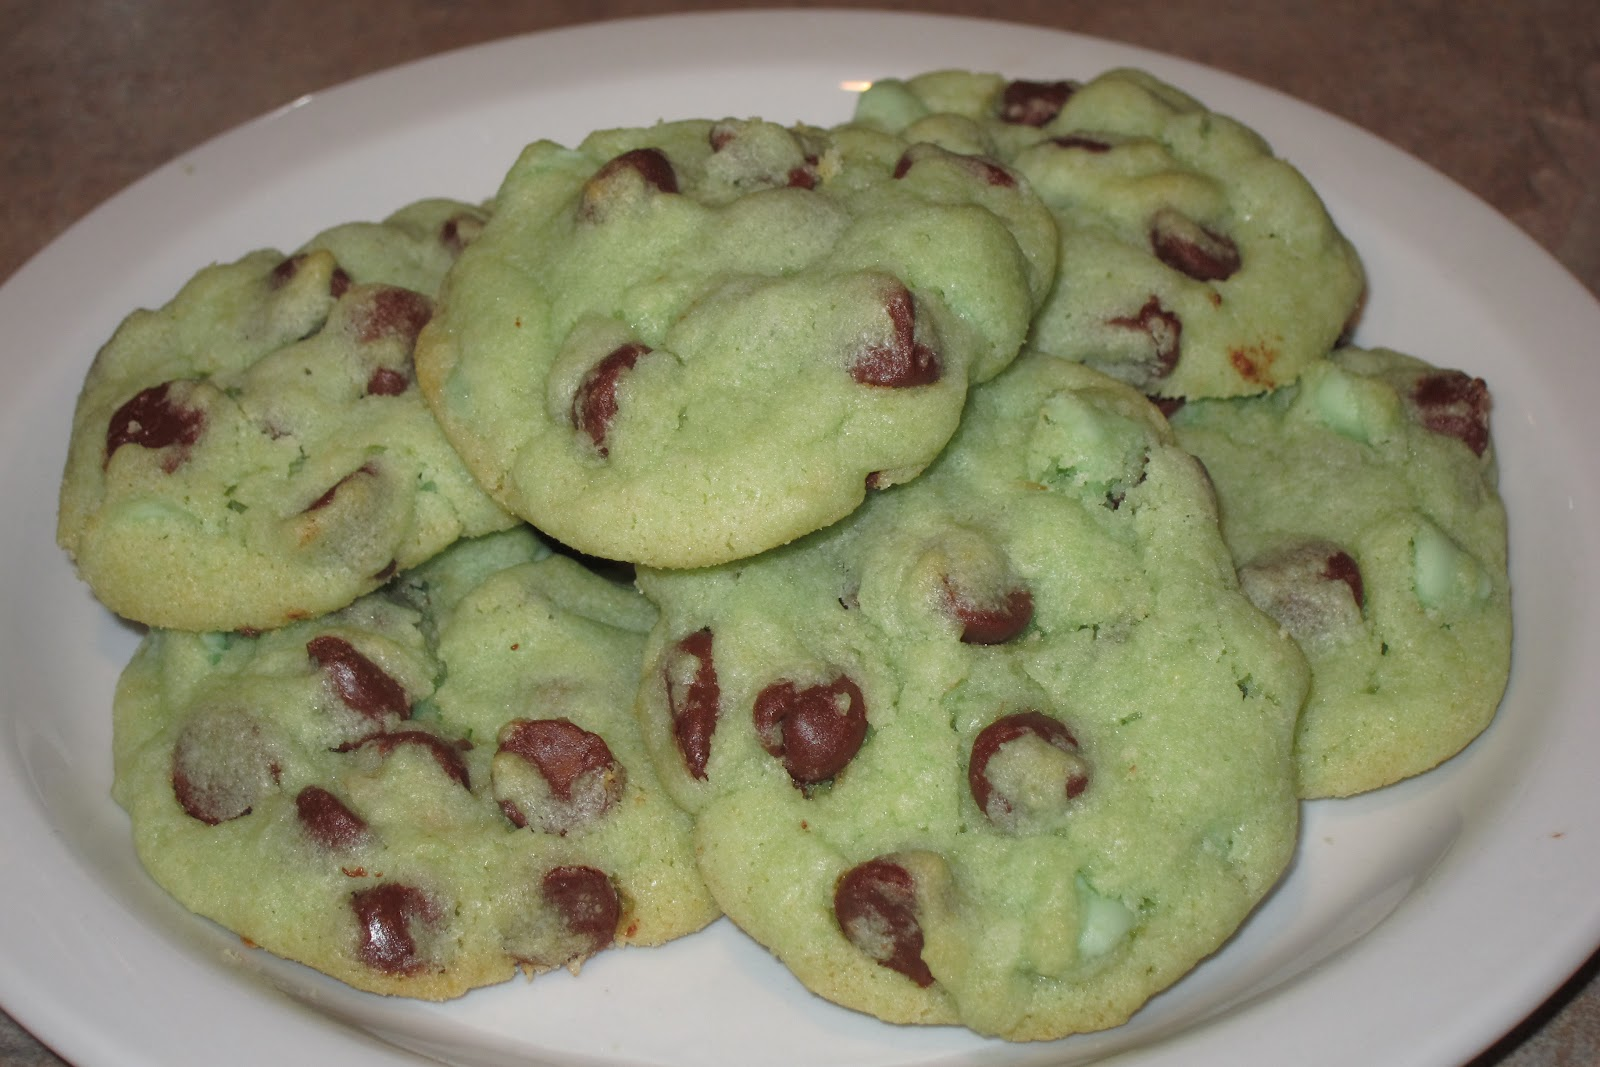 Inspired Whims: Mint Chocolate Chip Cookies